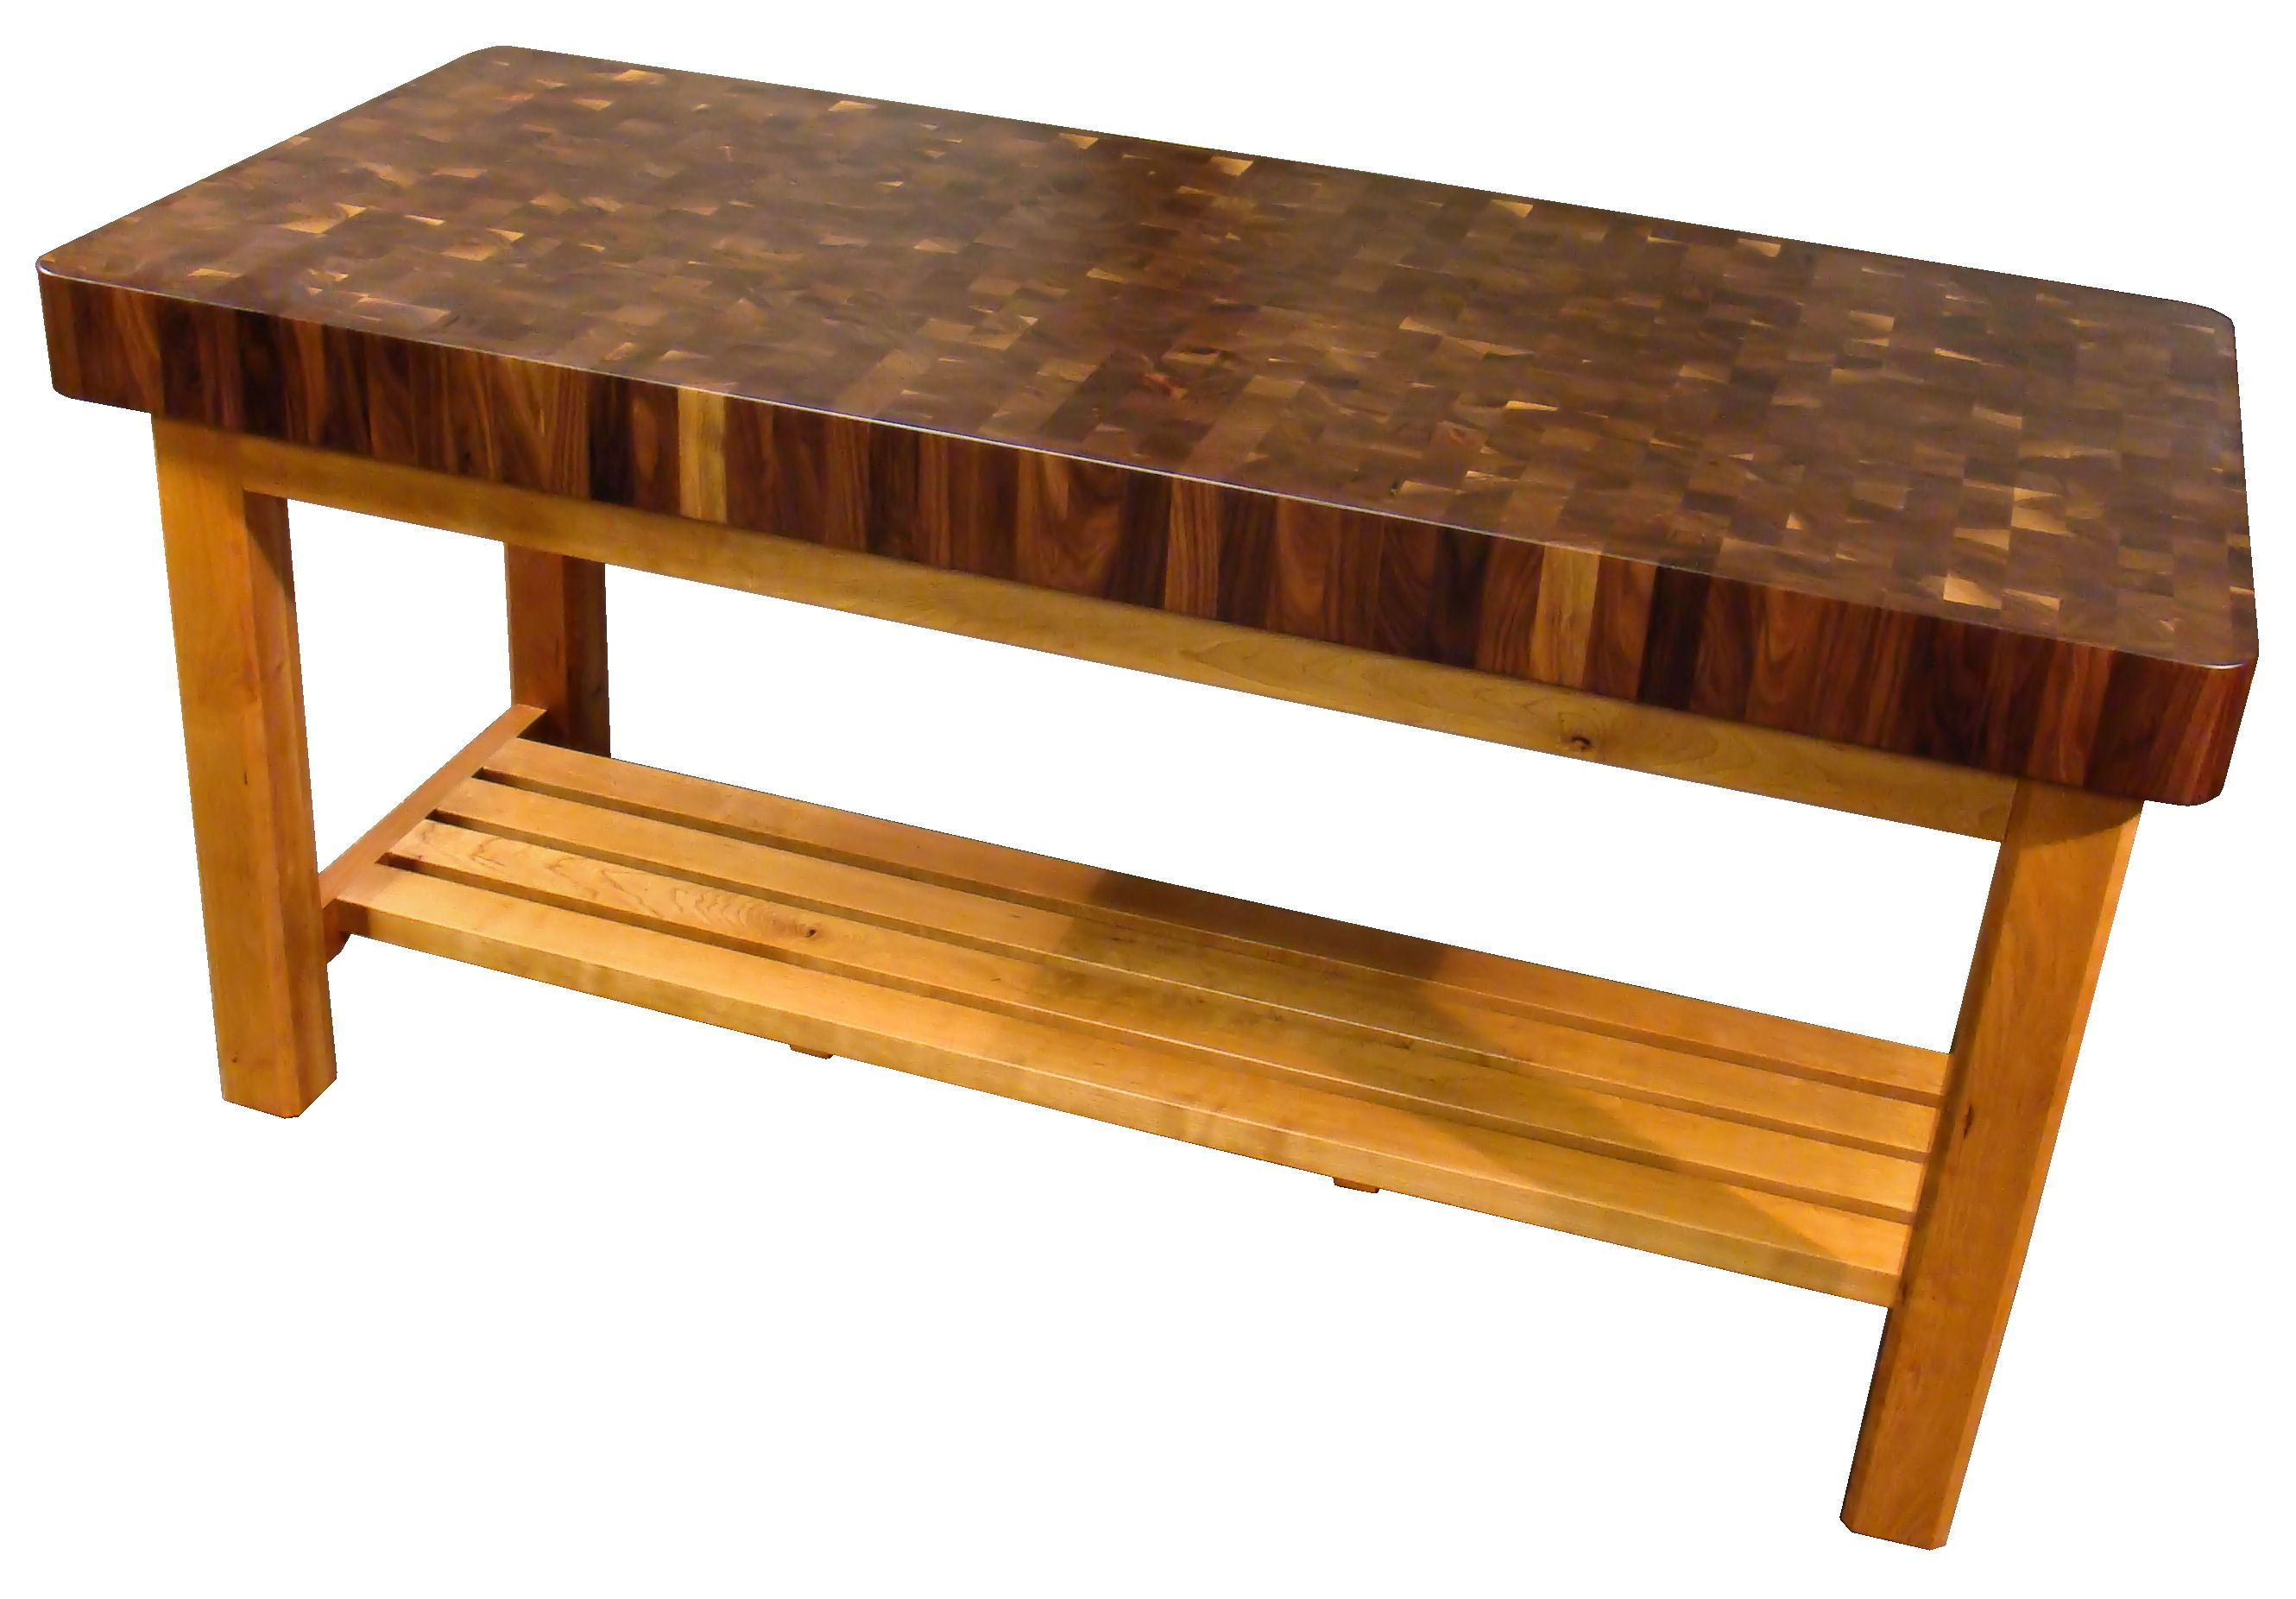 ... Custom Walnut Butcher Block Chopping Table With Cherry Base. This Table  Uses Mortise And Tenon ...